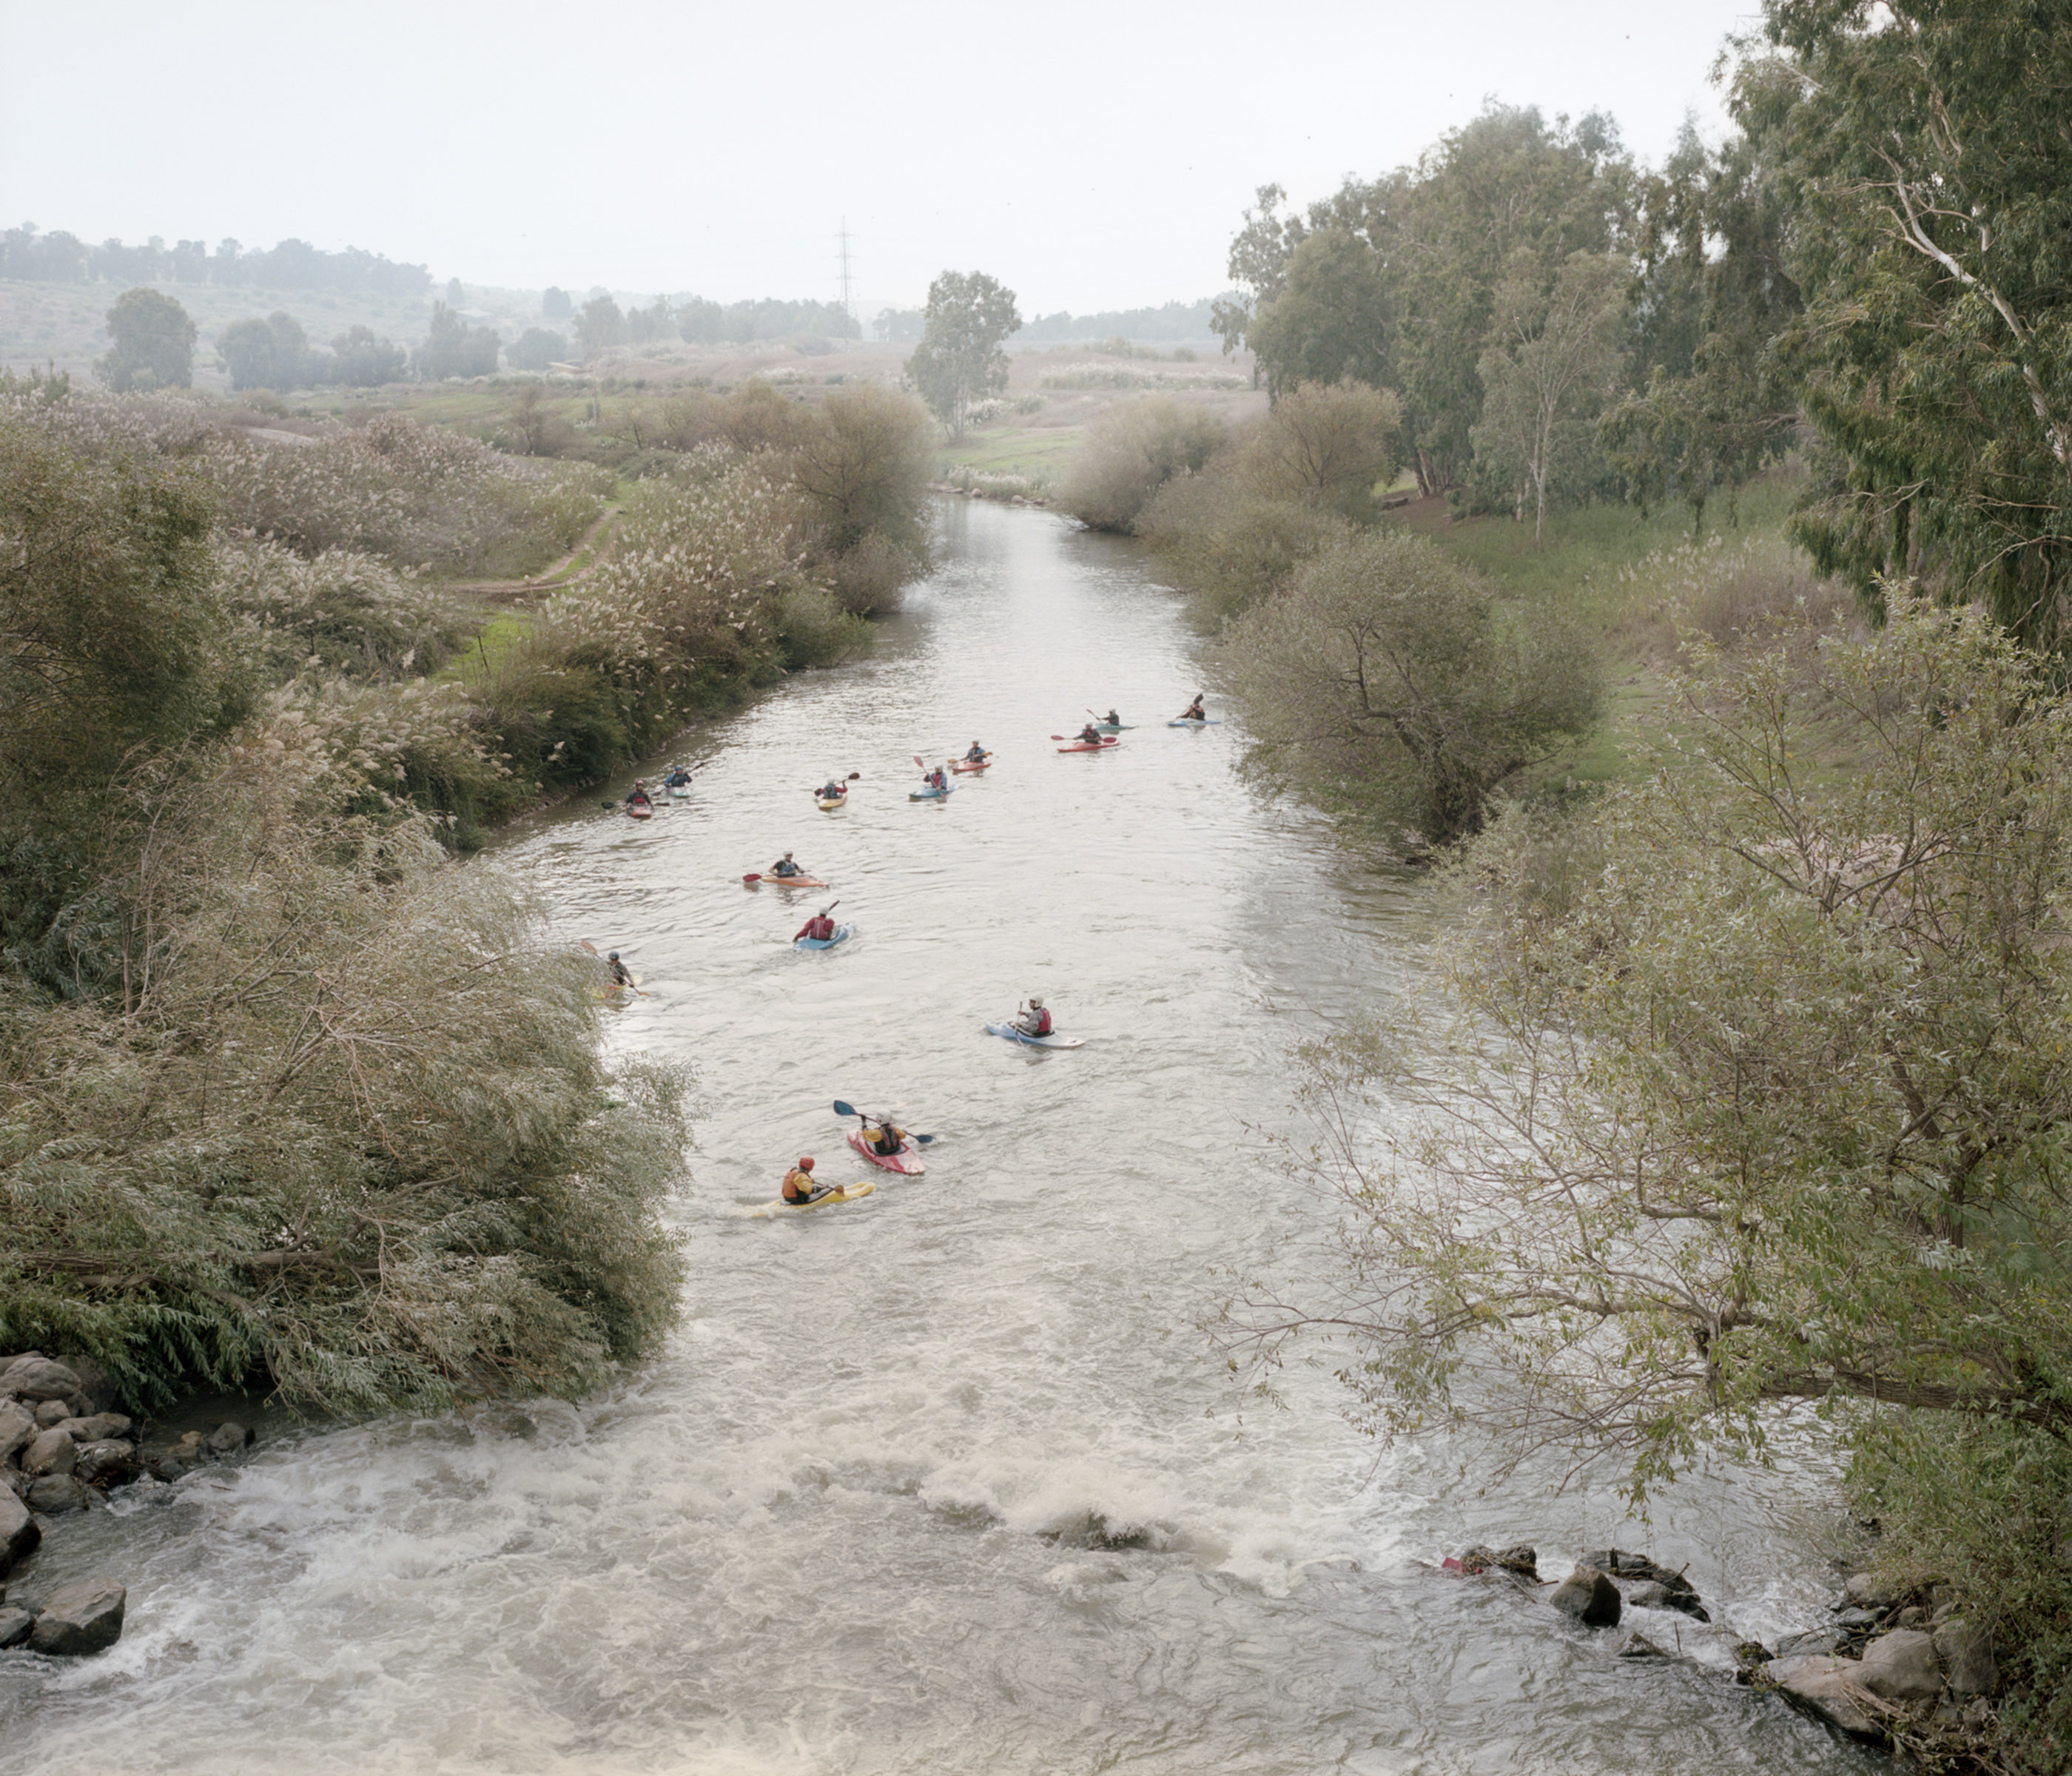 'Canoeists on Jordan River, Israel', 2013, fotografía color, 40 X 46,6 cm.